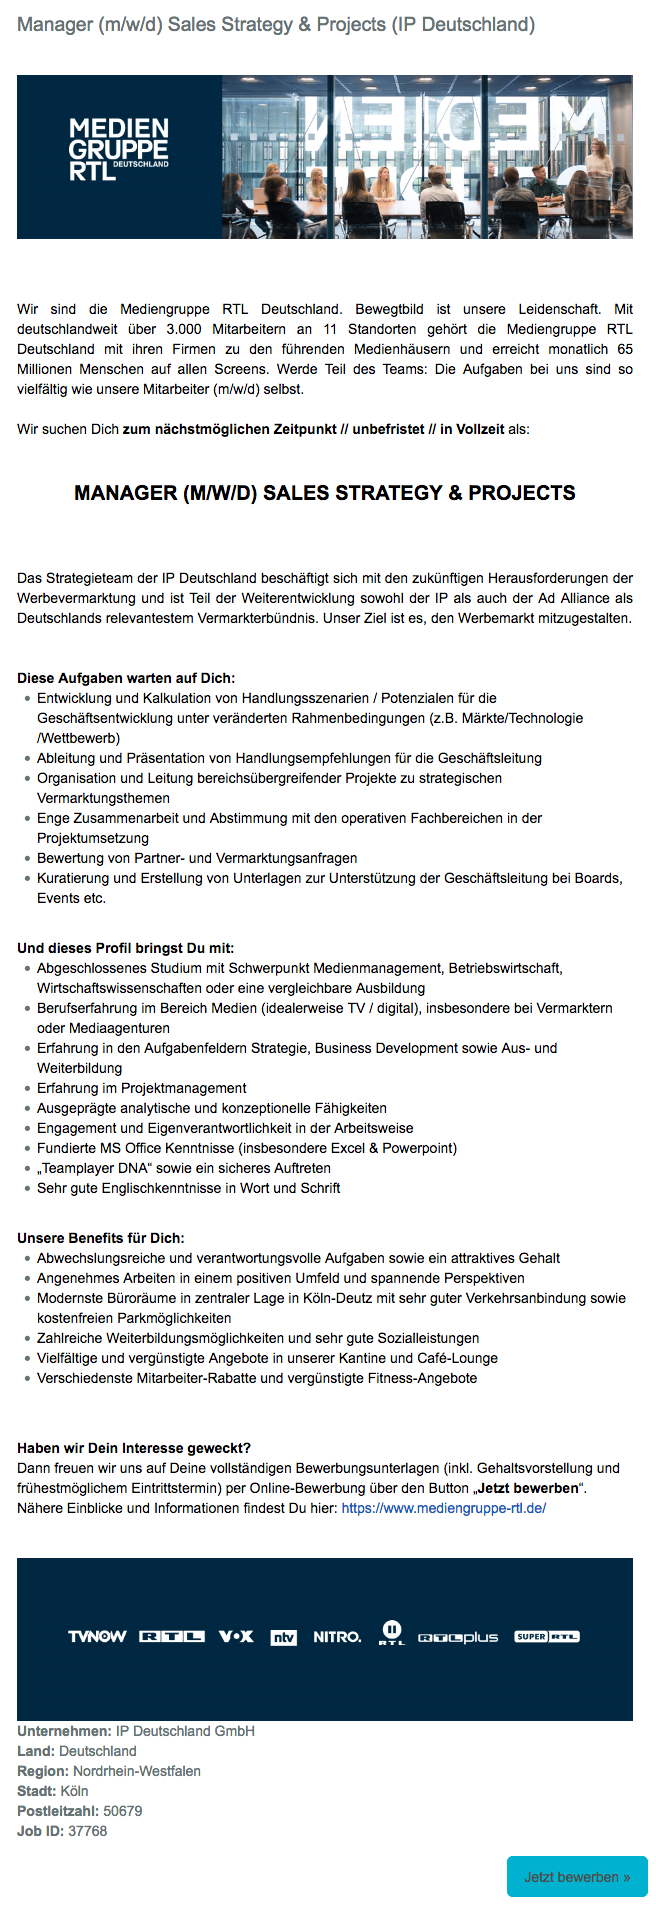 Manager (m/w/d) Sales Strategy & Projects (IP Deutschland)